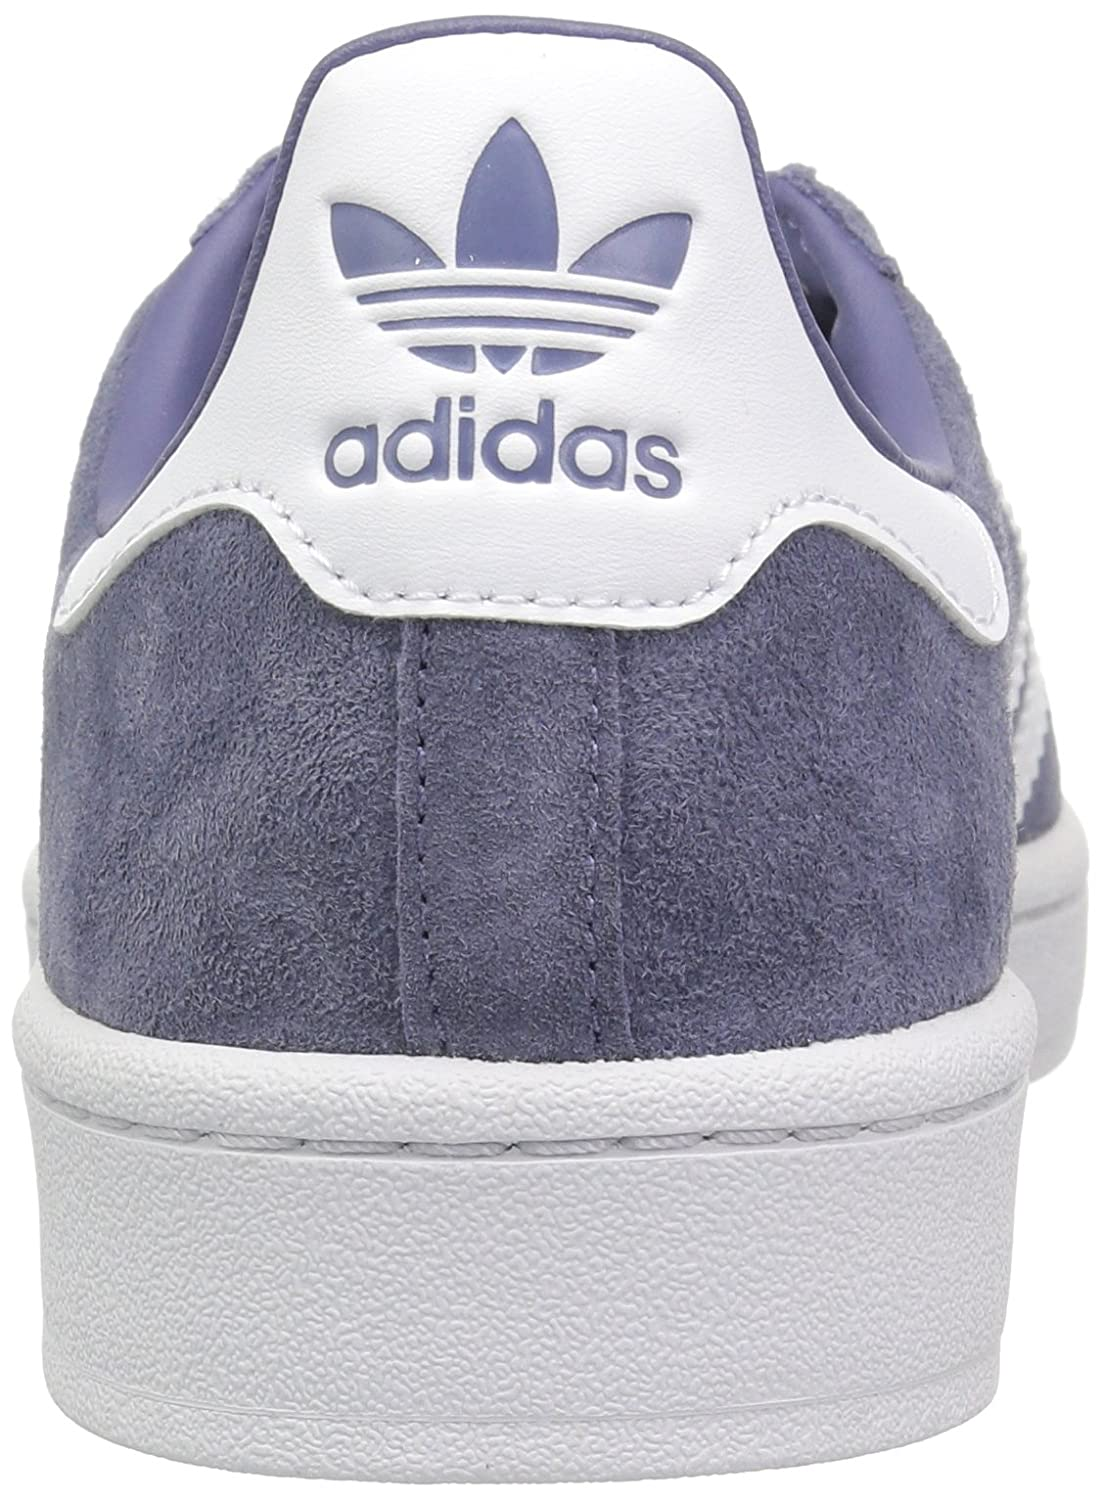 Adidas-Campus-Men-039-s-Casual-Fashion-Sneakers-Retro-Athletic-Shoes thumbnail 51